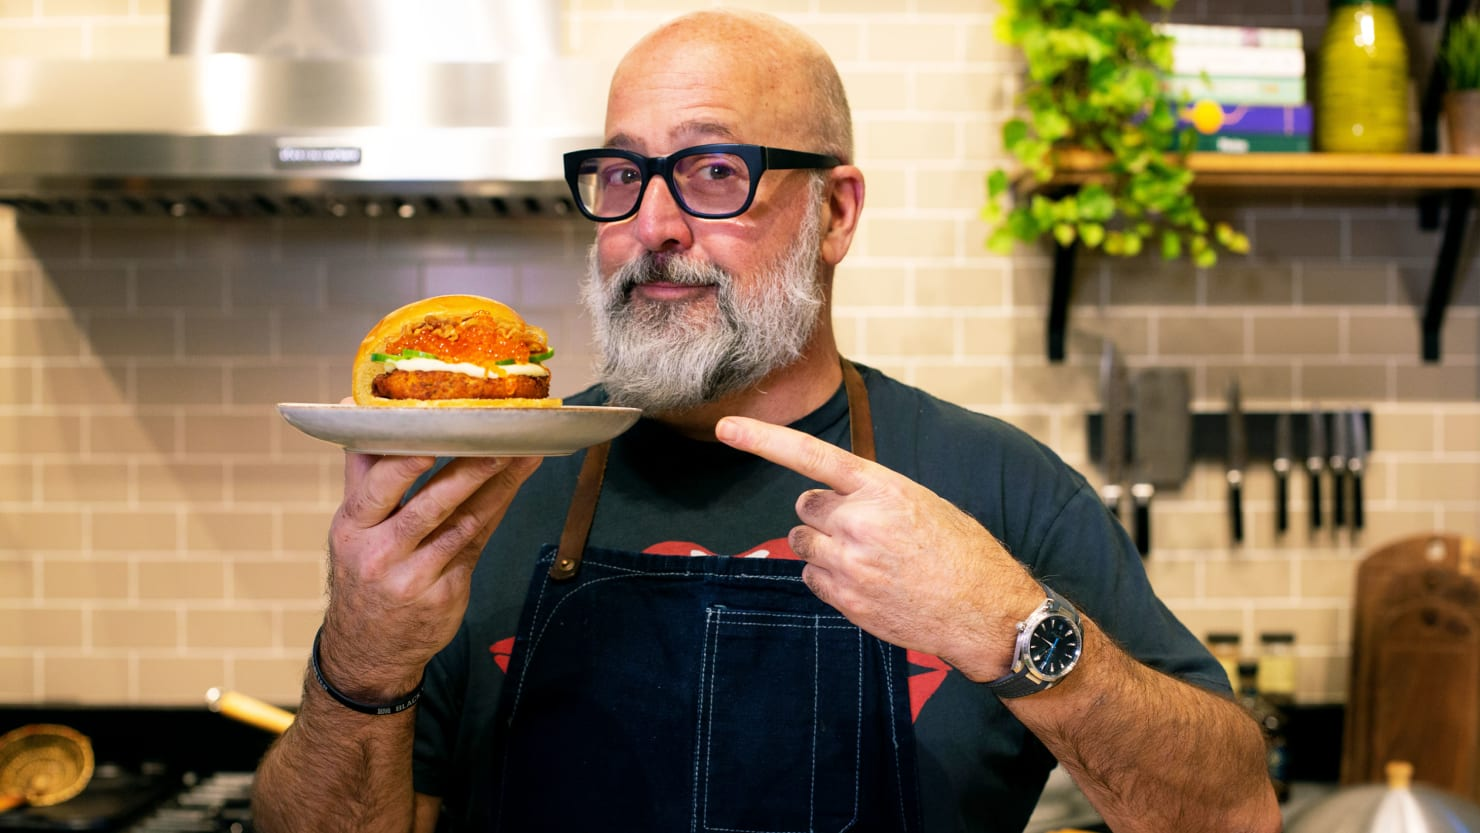 10 Rounds with Andrew Zimmern and his Super Bowl Party Menu